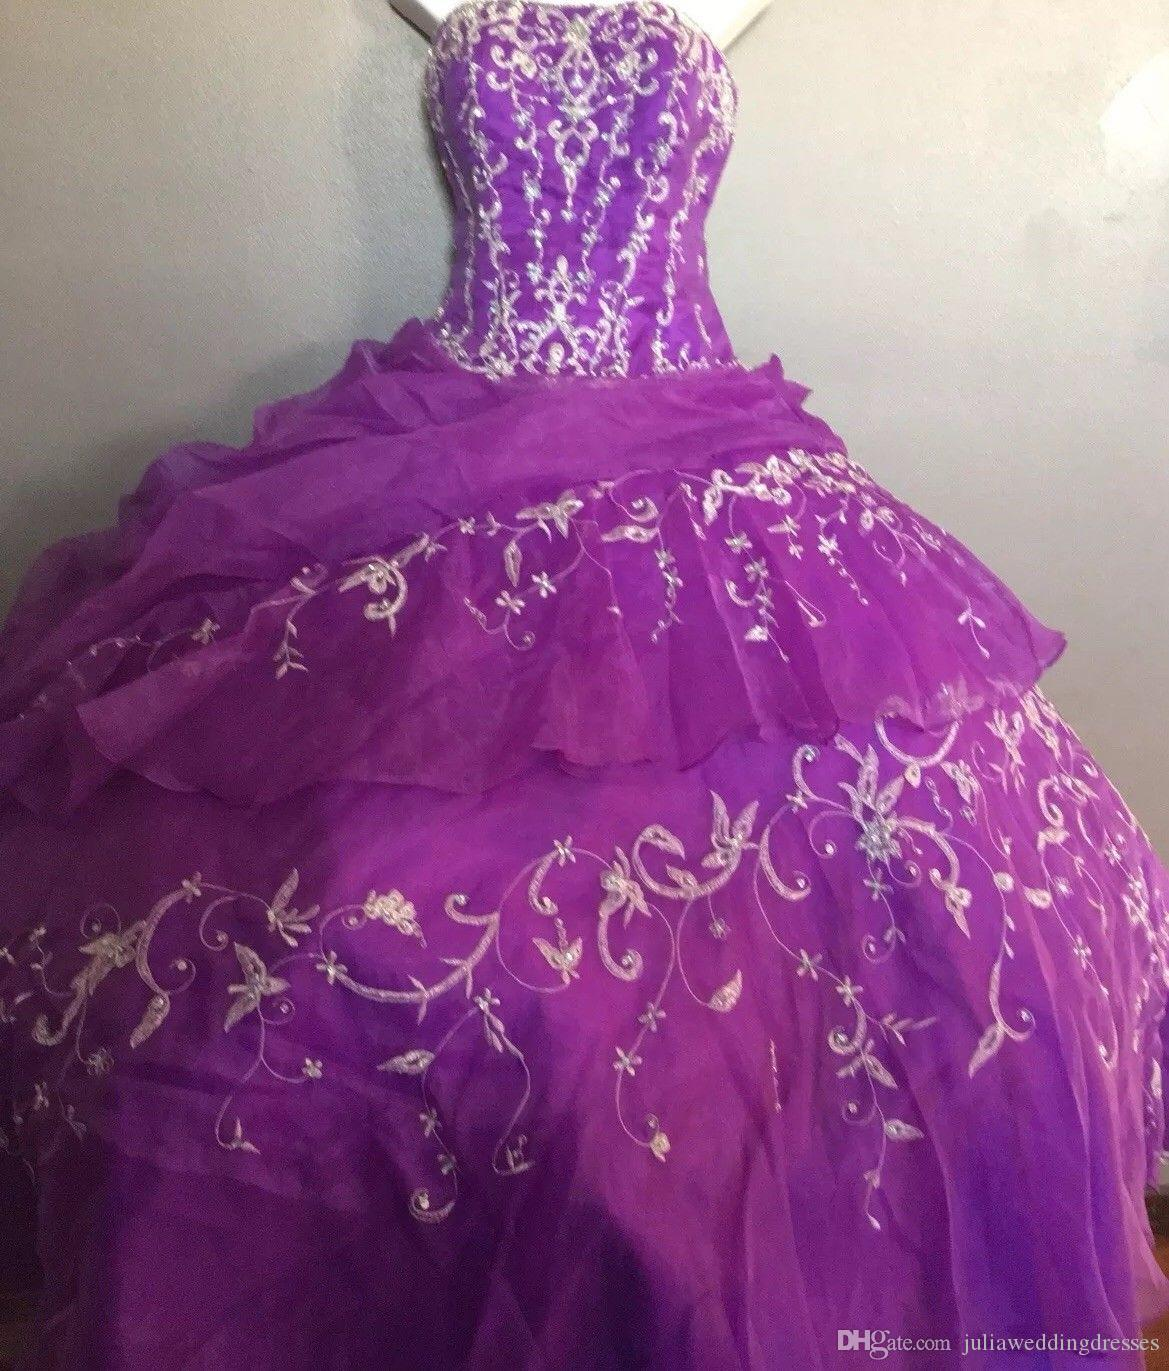 2019 New Luxury Purple Ball Gown Embroidery Quinceanera Dresses Crystals  For 15 Years Sweet 16 Plus Size Pageant Prom Party Gown QC1054 Aqua  Quinceanera ... 35356fe3a6ca